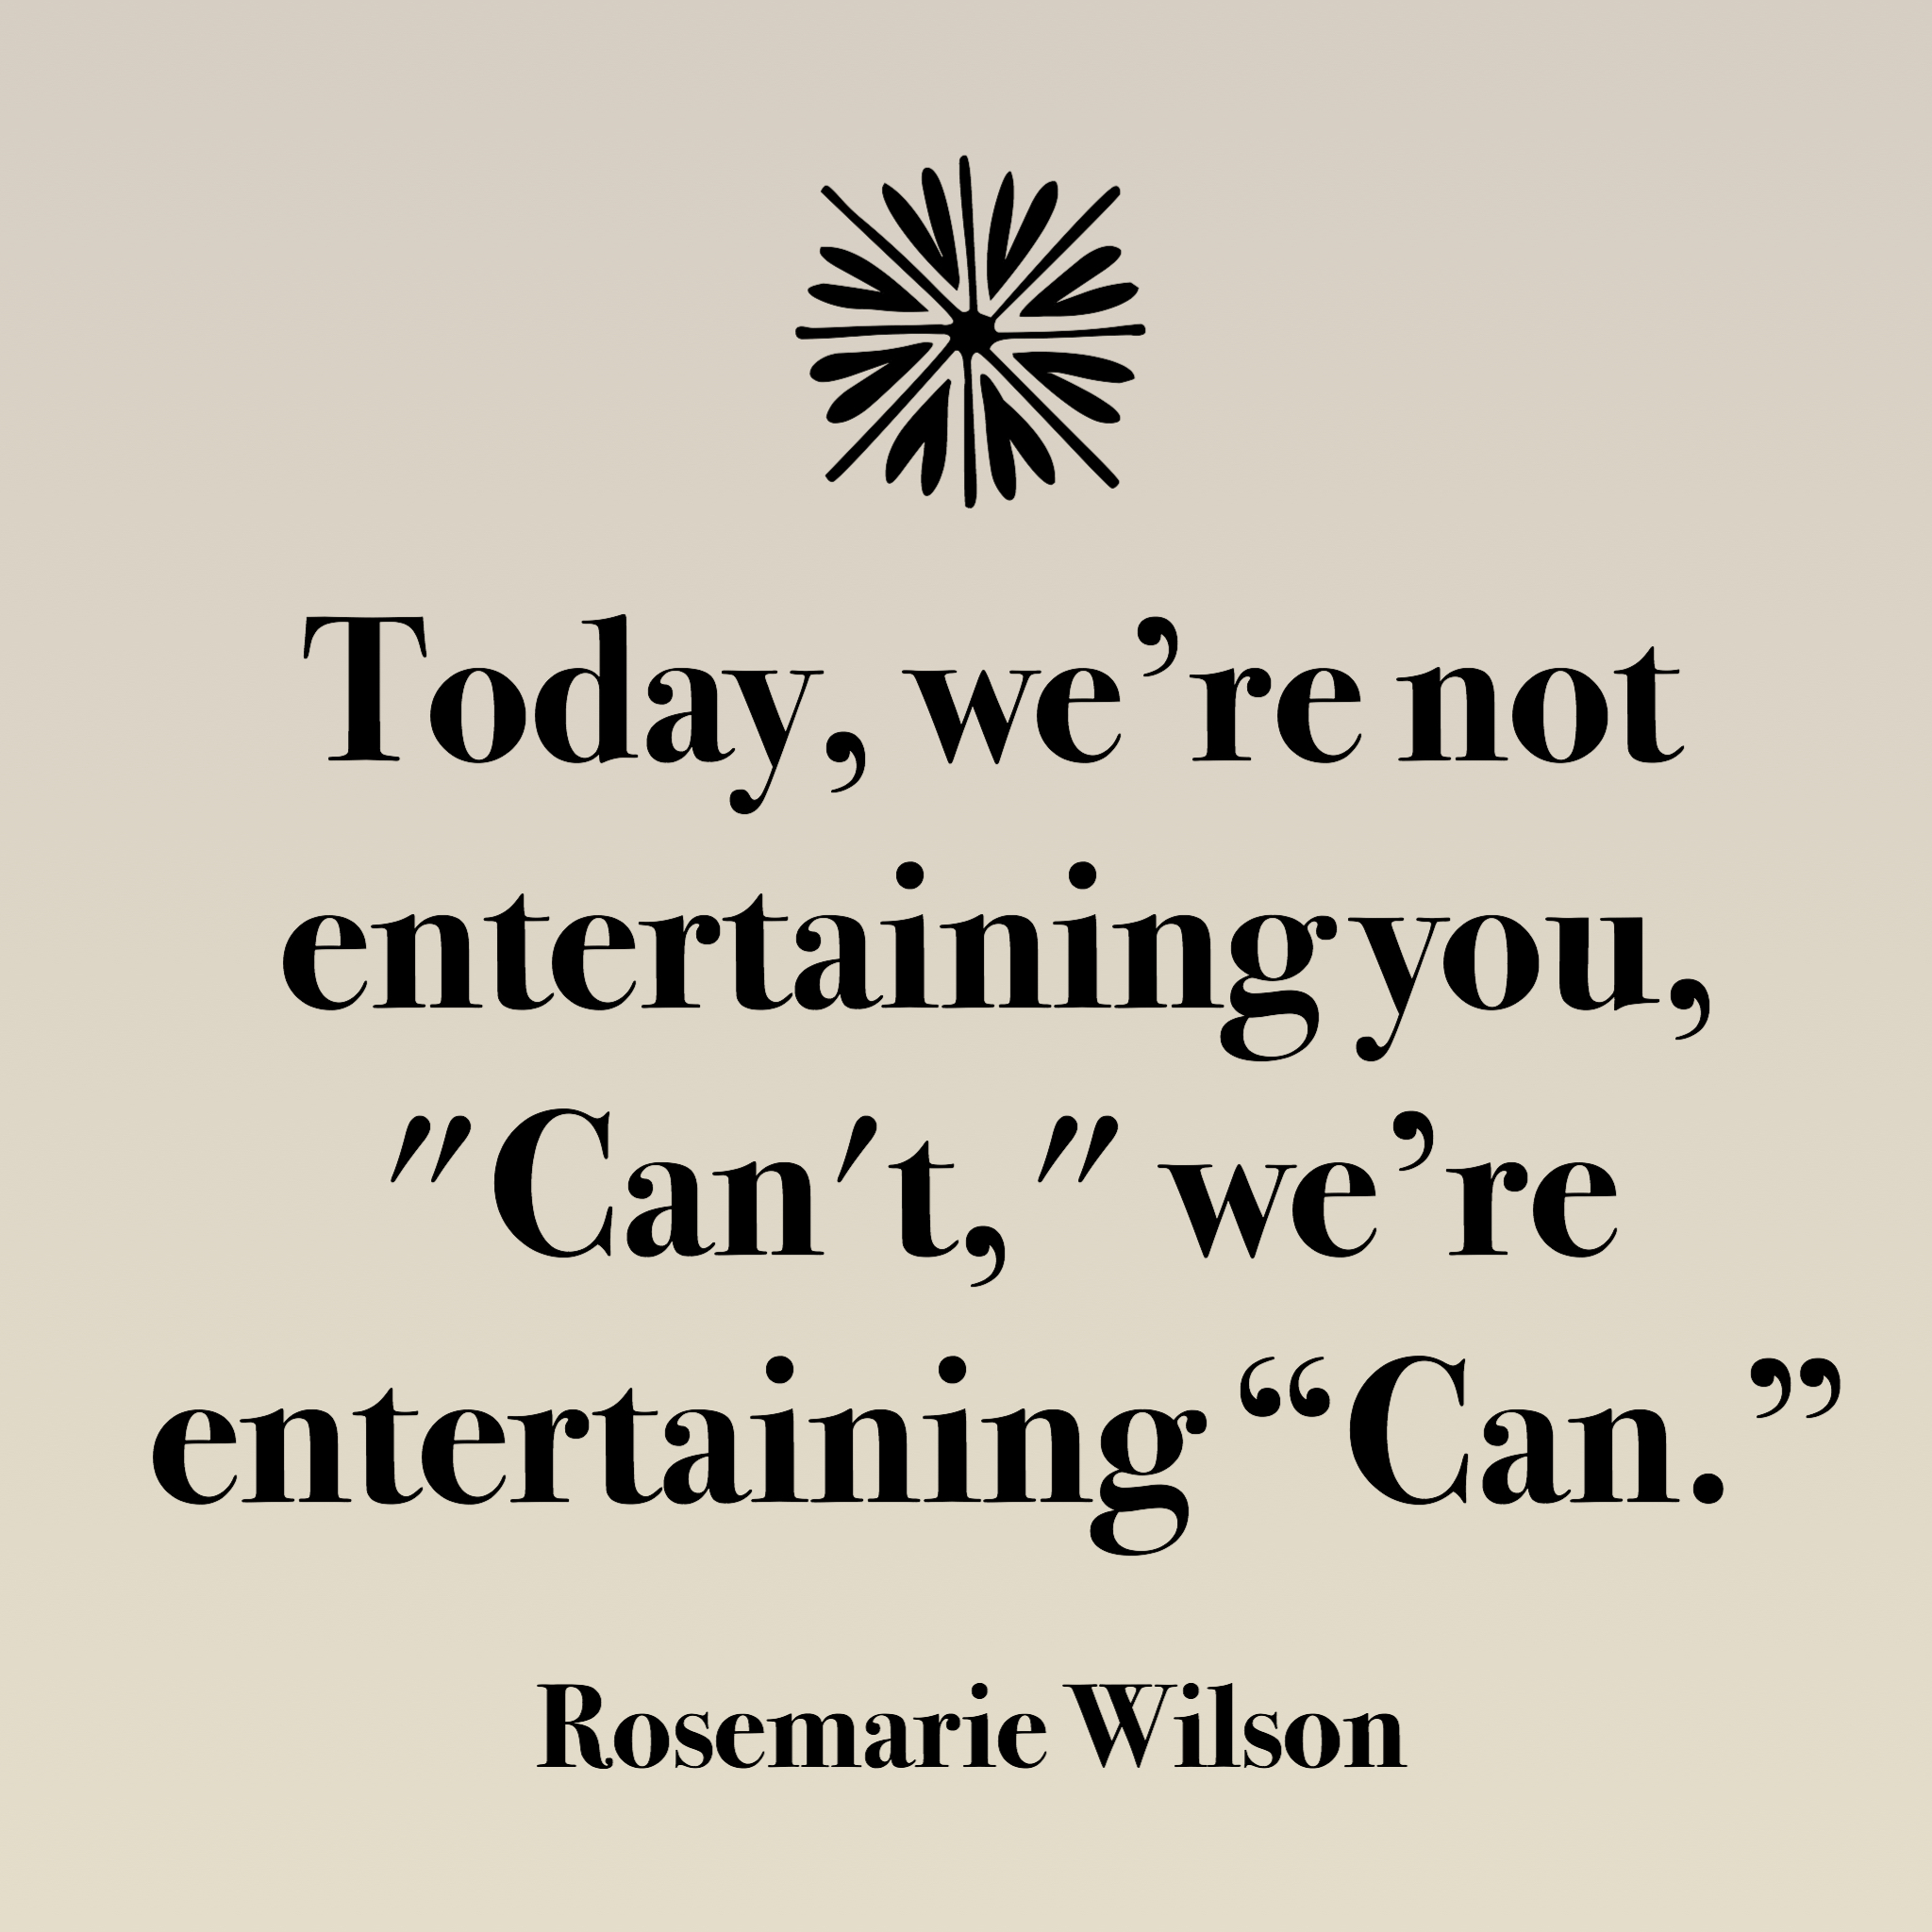 Great quote from notable woman Rosemarie Wilson of Pragmatic Coaching